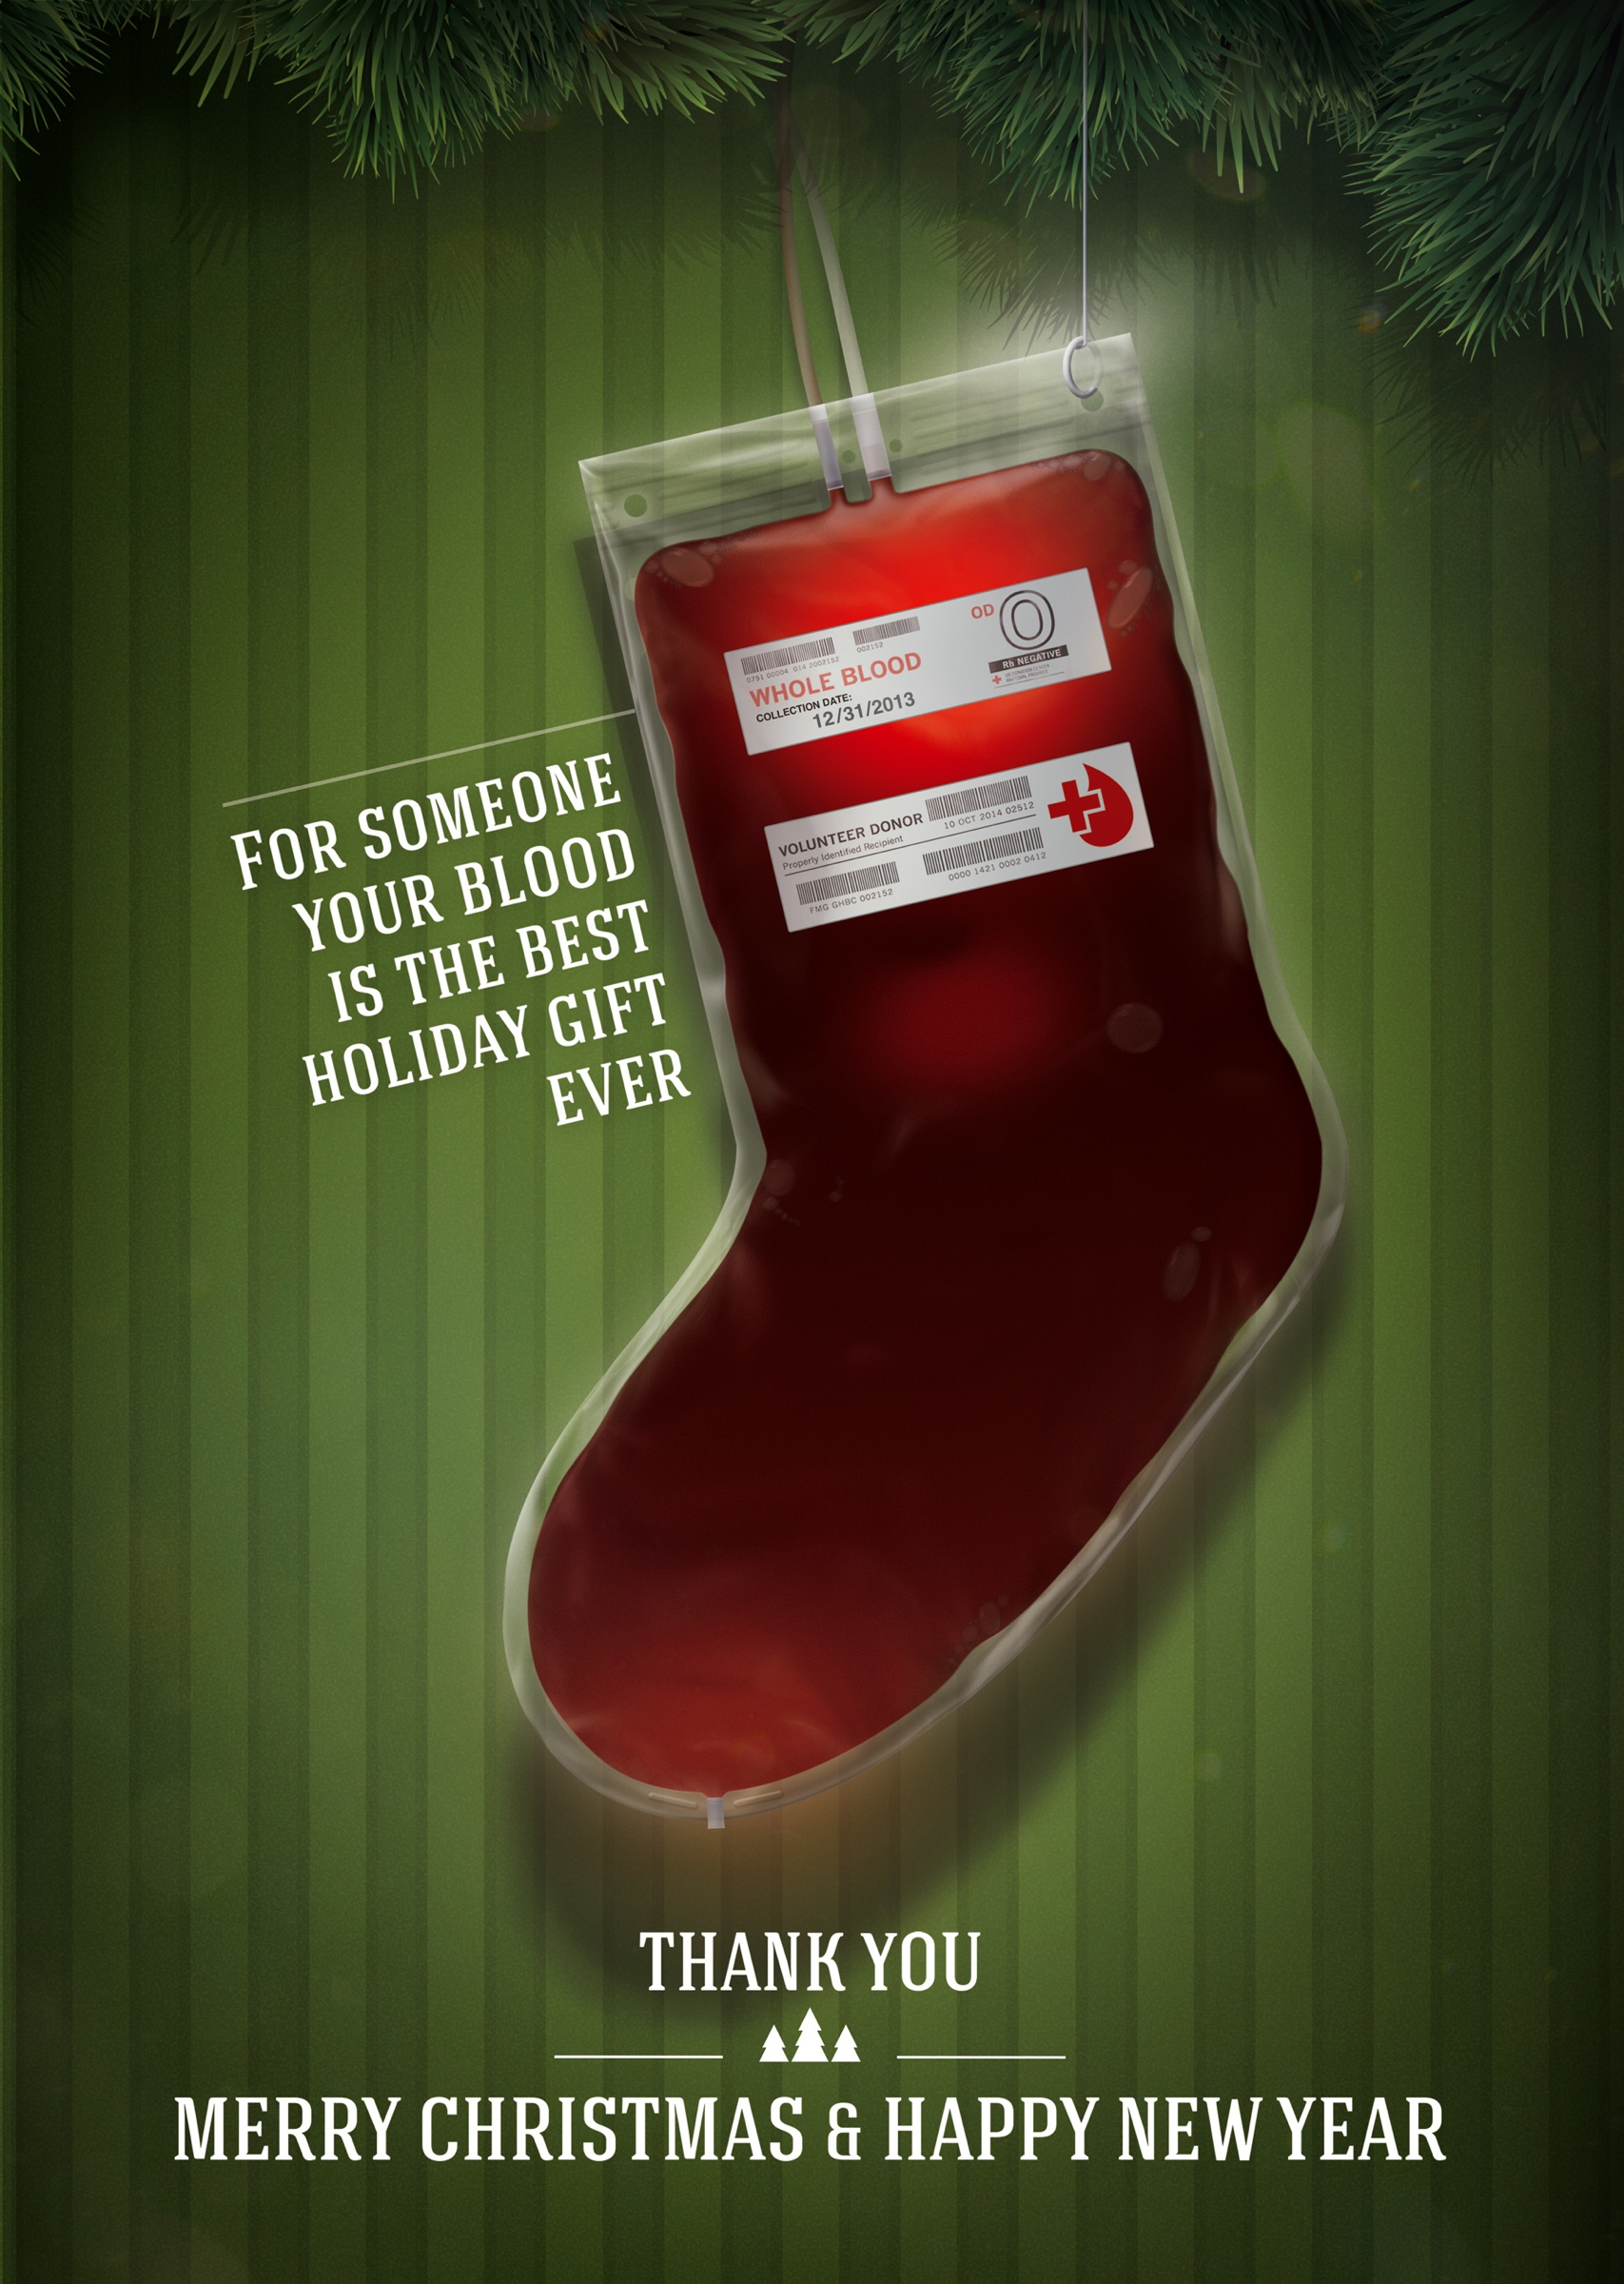 Red Cross Print Advert By Provid: Christmas stocking | Ads of the World™